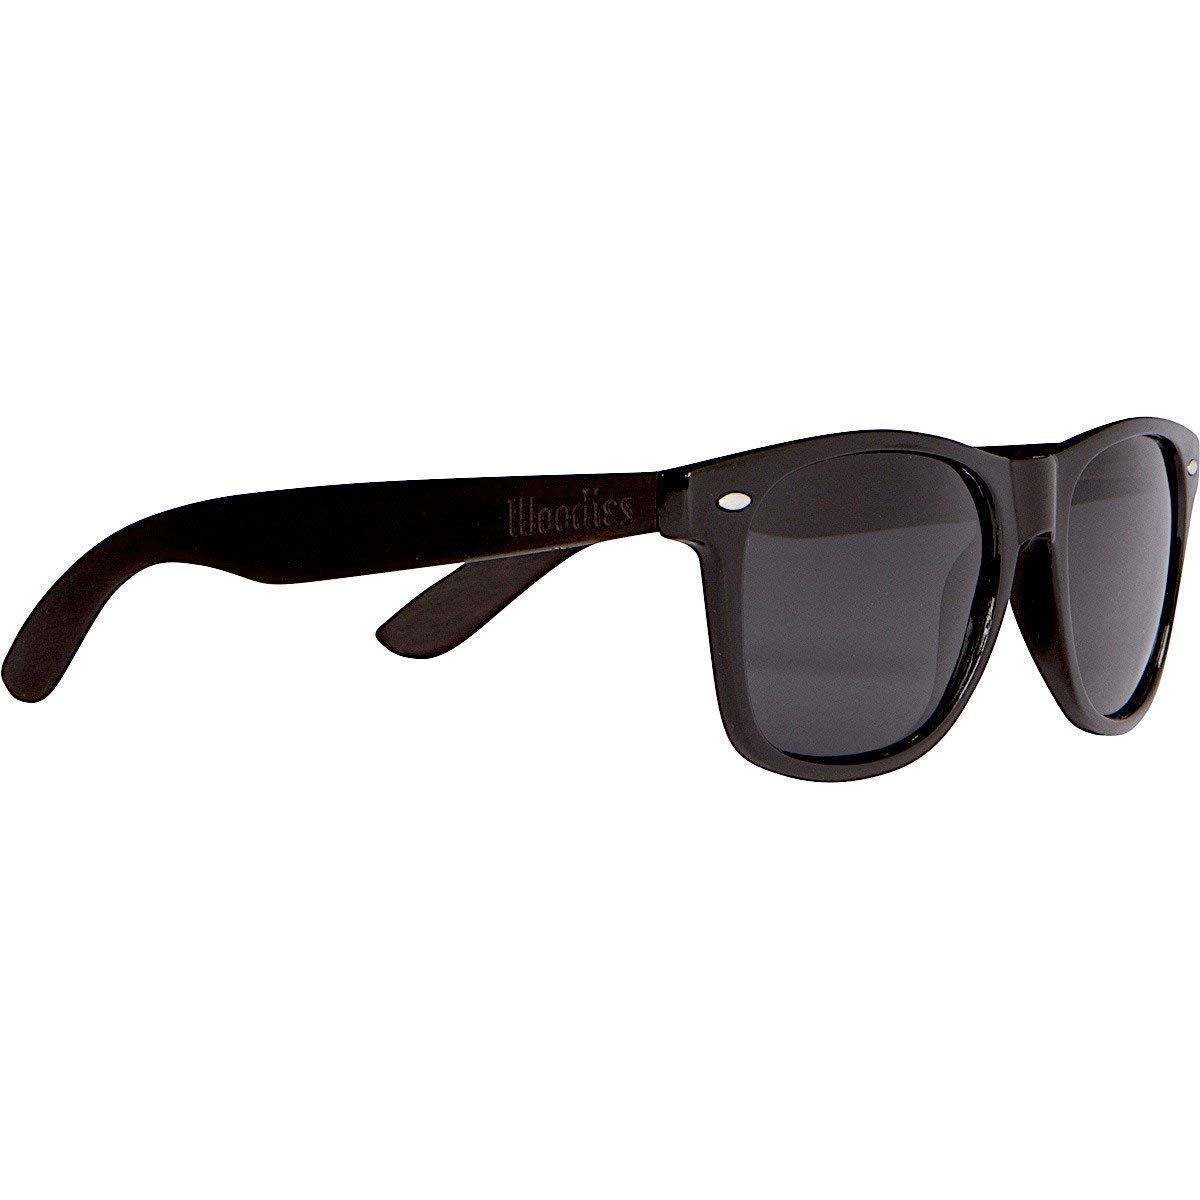 584505a724 WOODIES Ebony Wood Sunglasses with Black Polarized Lenses for Men or Women  product image